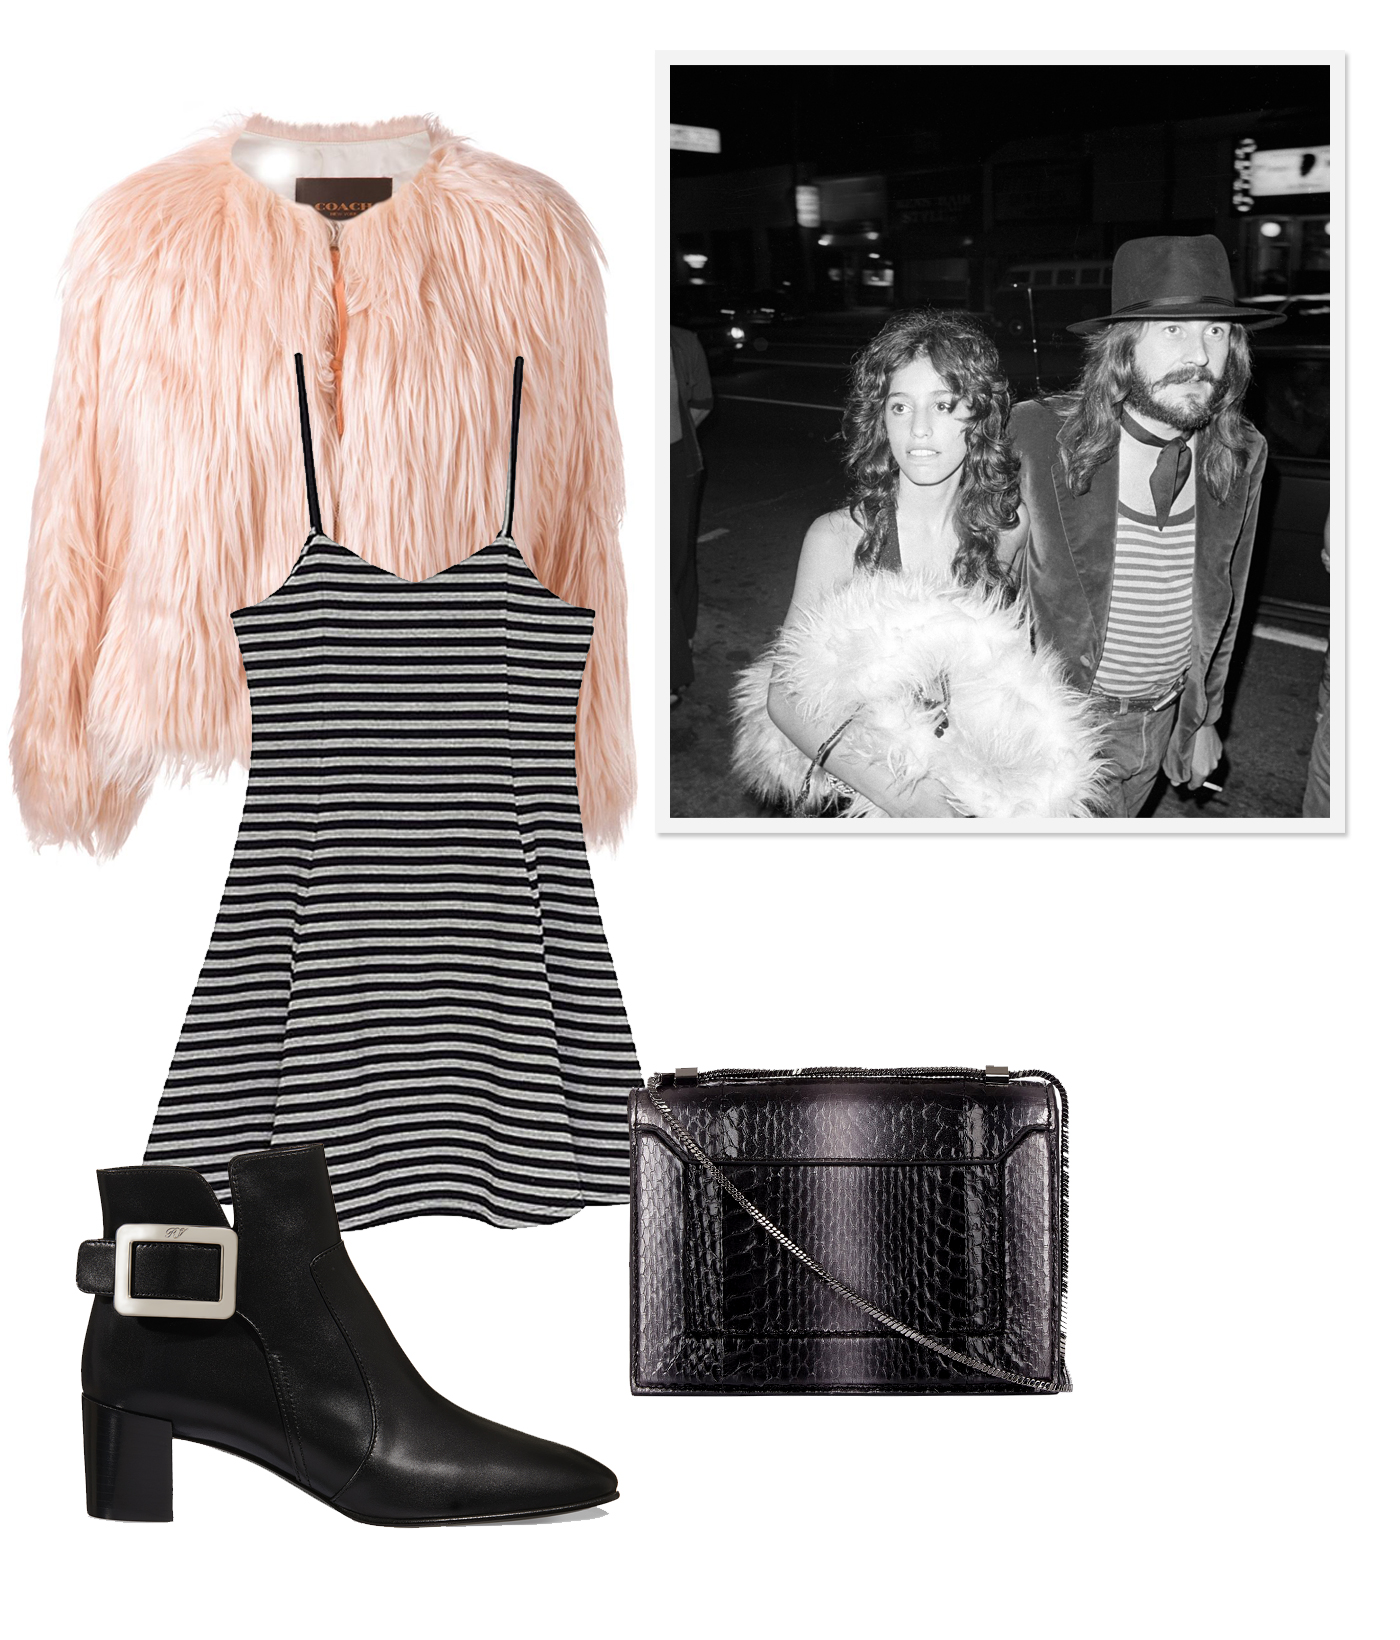 party-outfit-ideas-04.jpg